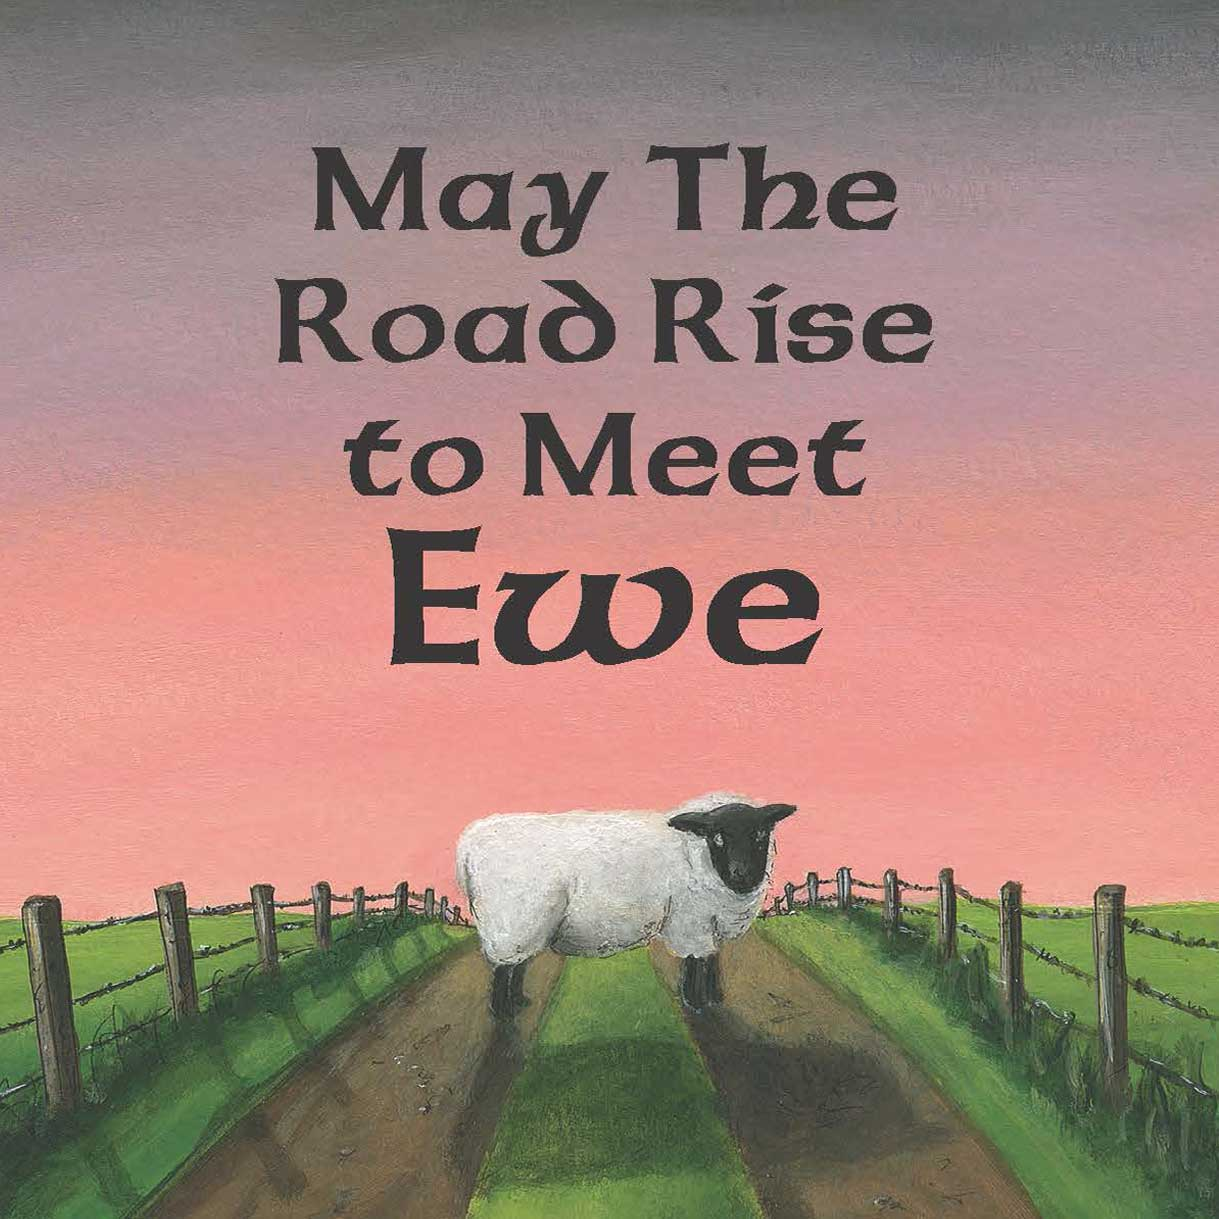 May the Road Rise To Meet Ewe